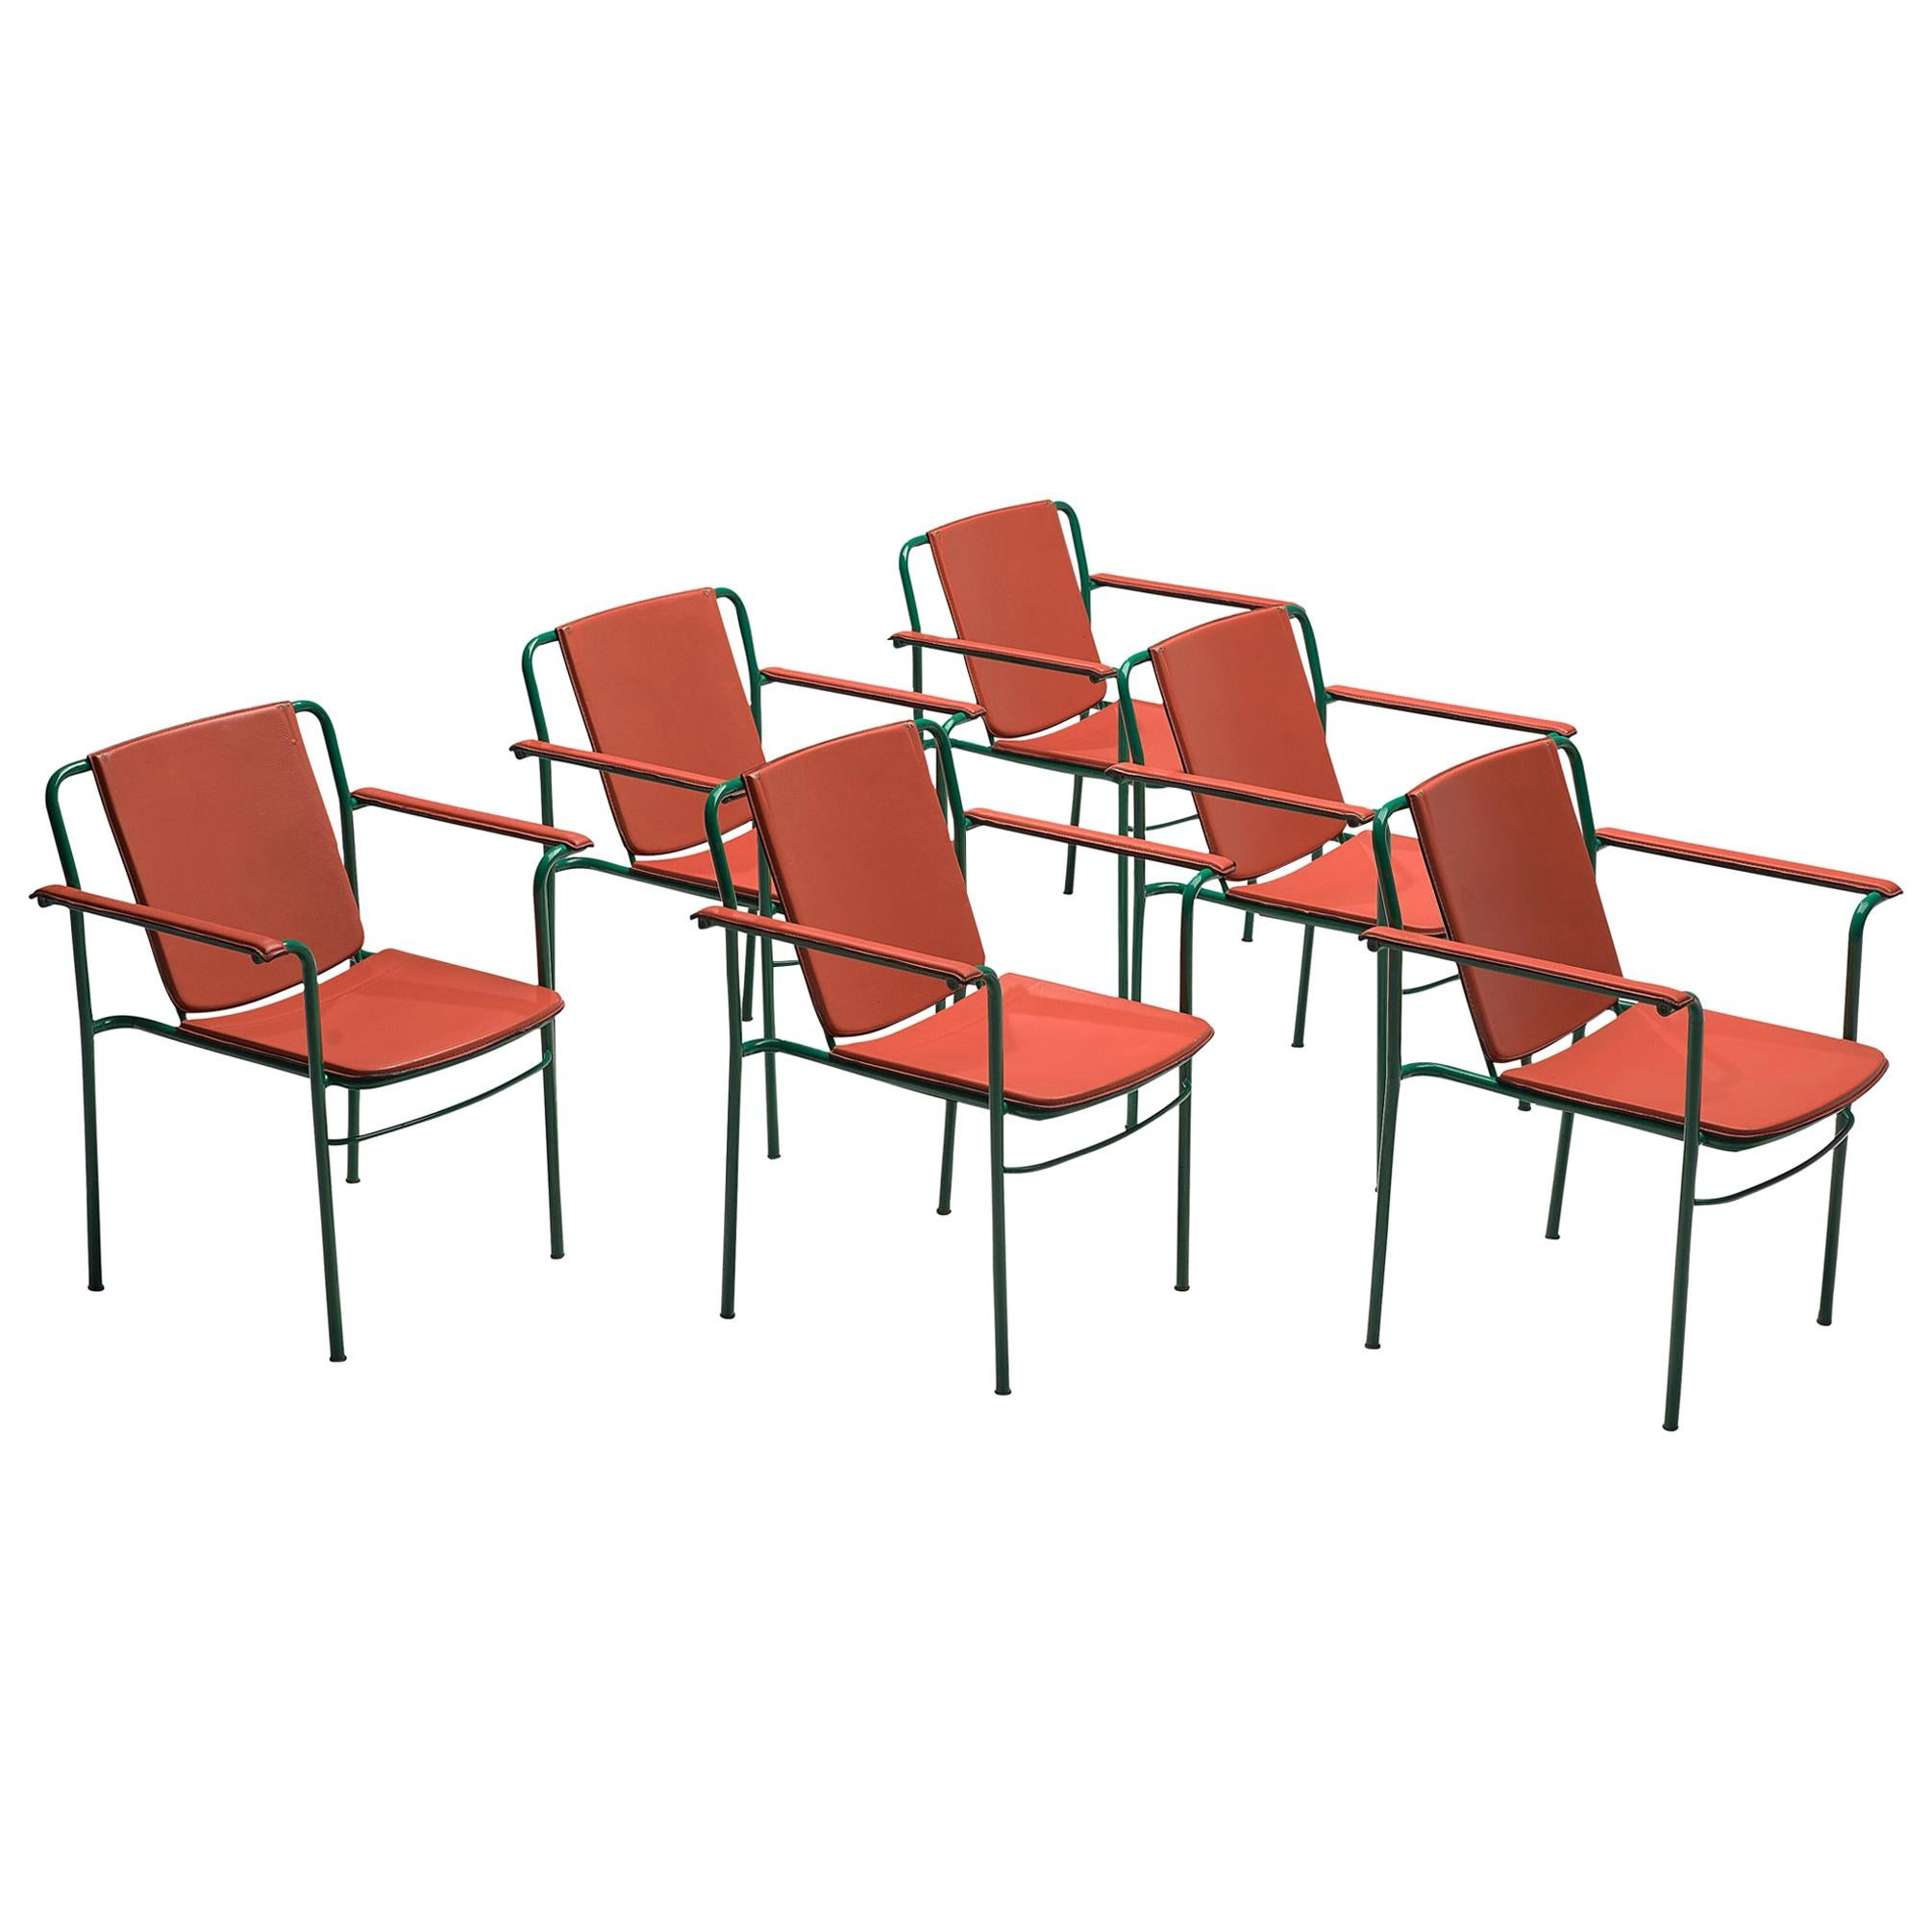 Set of Six 'Movie' Chairs by Mario Marenco for Poltrona Frau